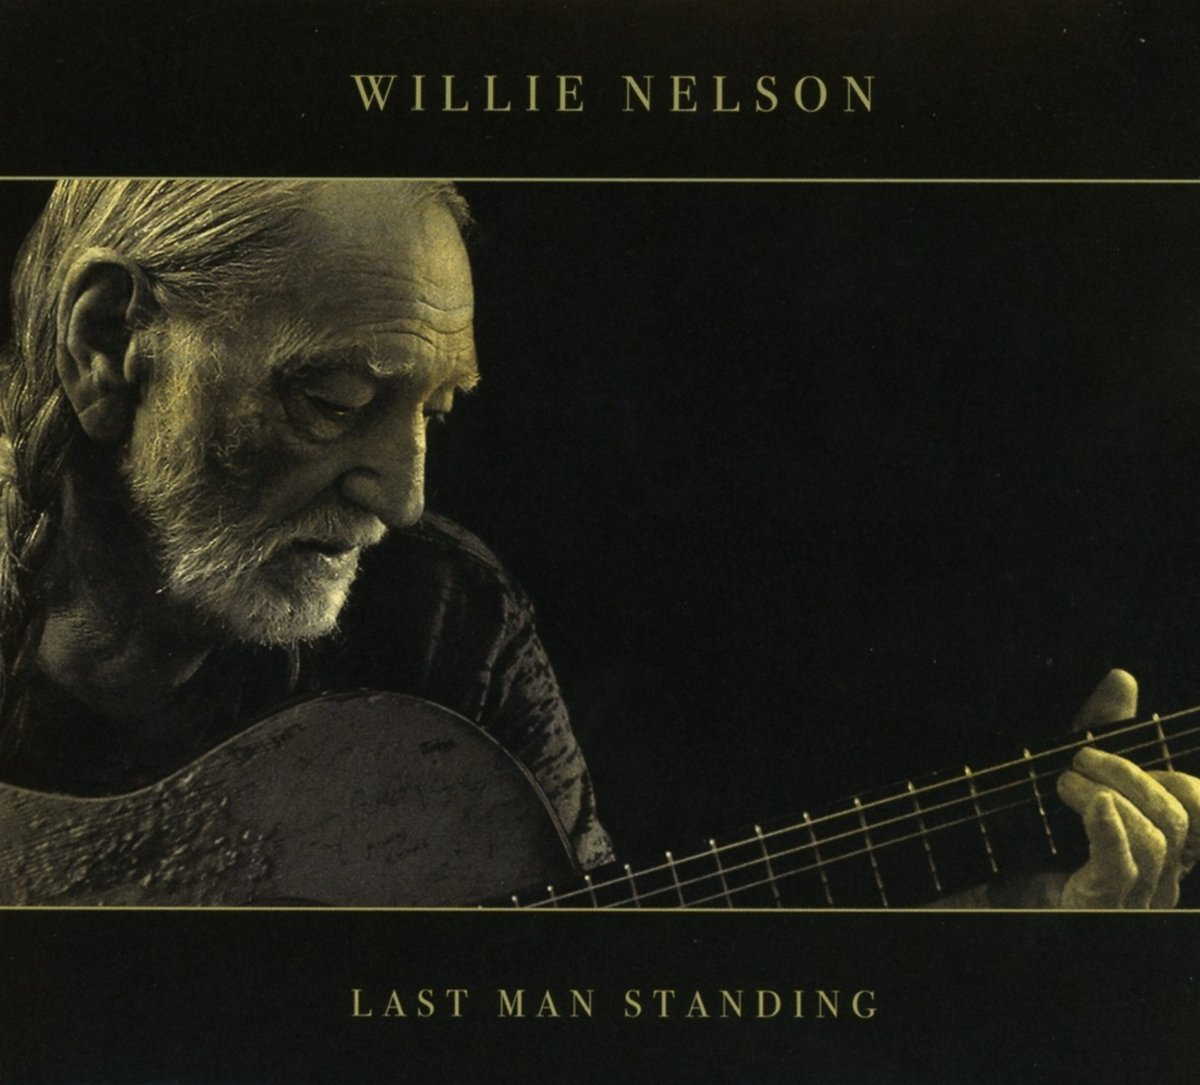 Willie Nelson - Page 2 71CNp53YywL._SL1200_